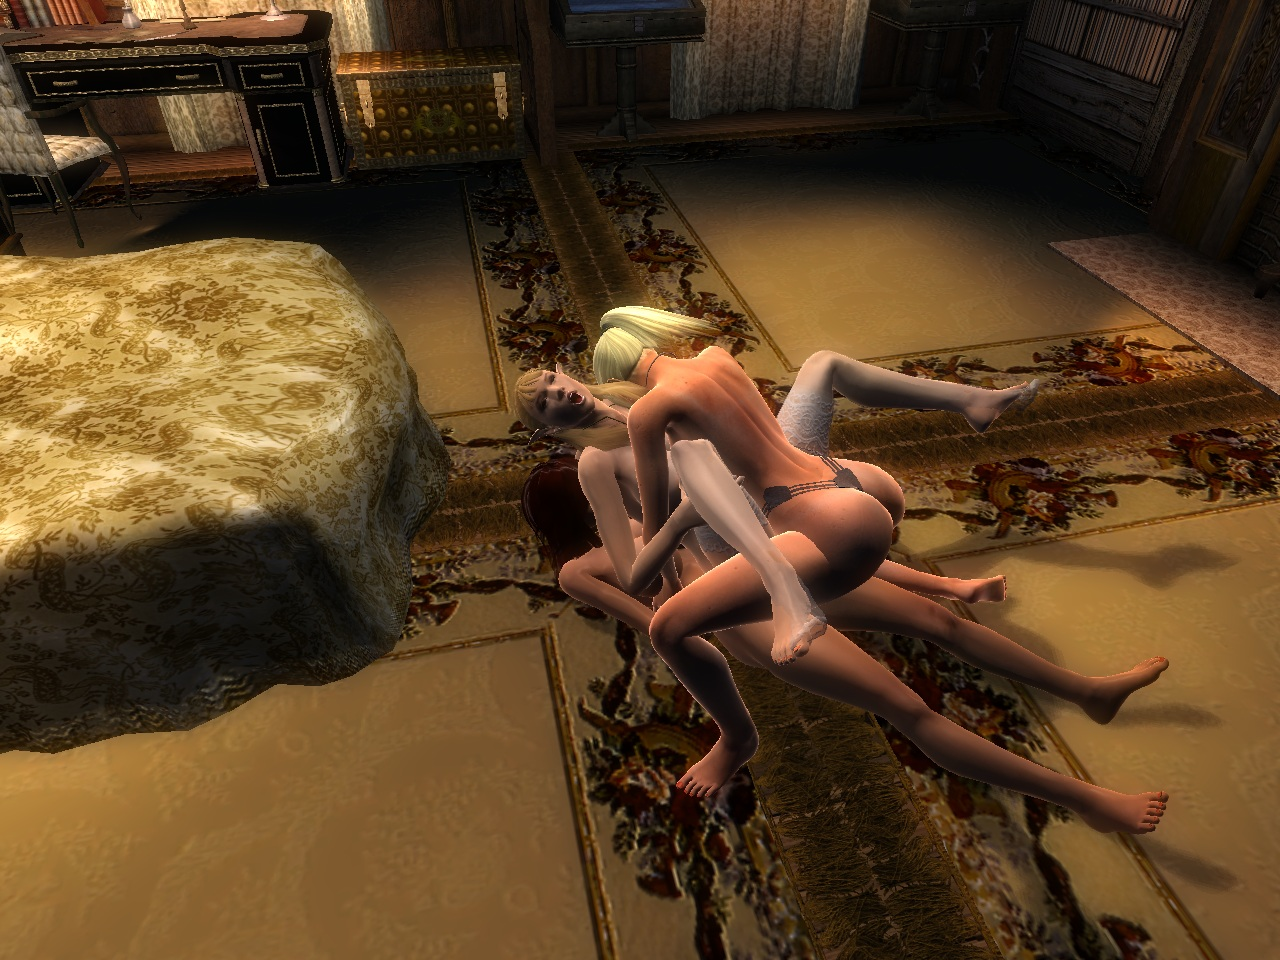 Oblivion adult mod youtube sexy pic